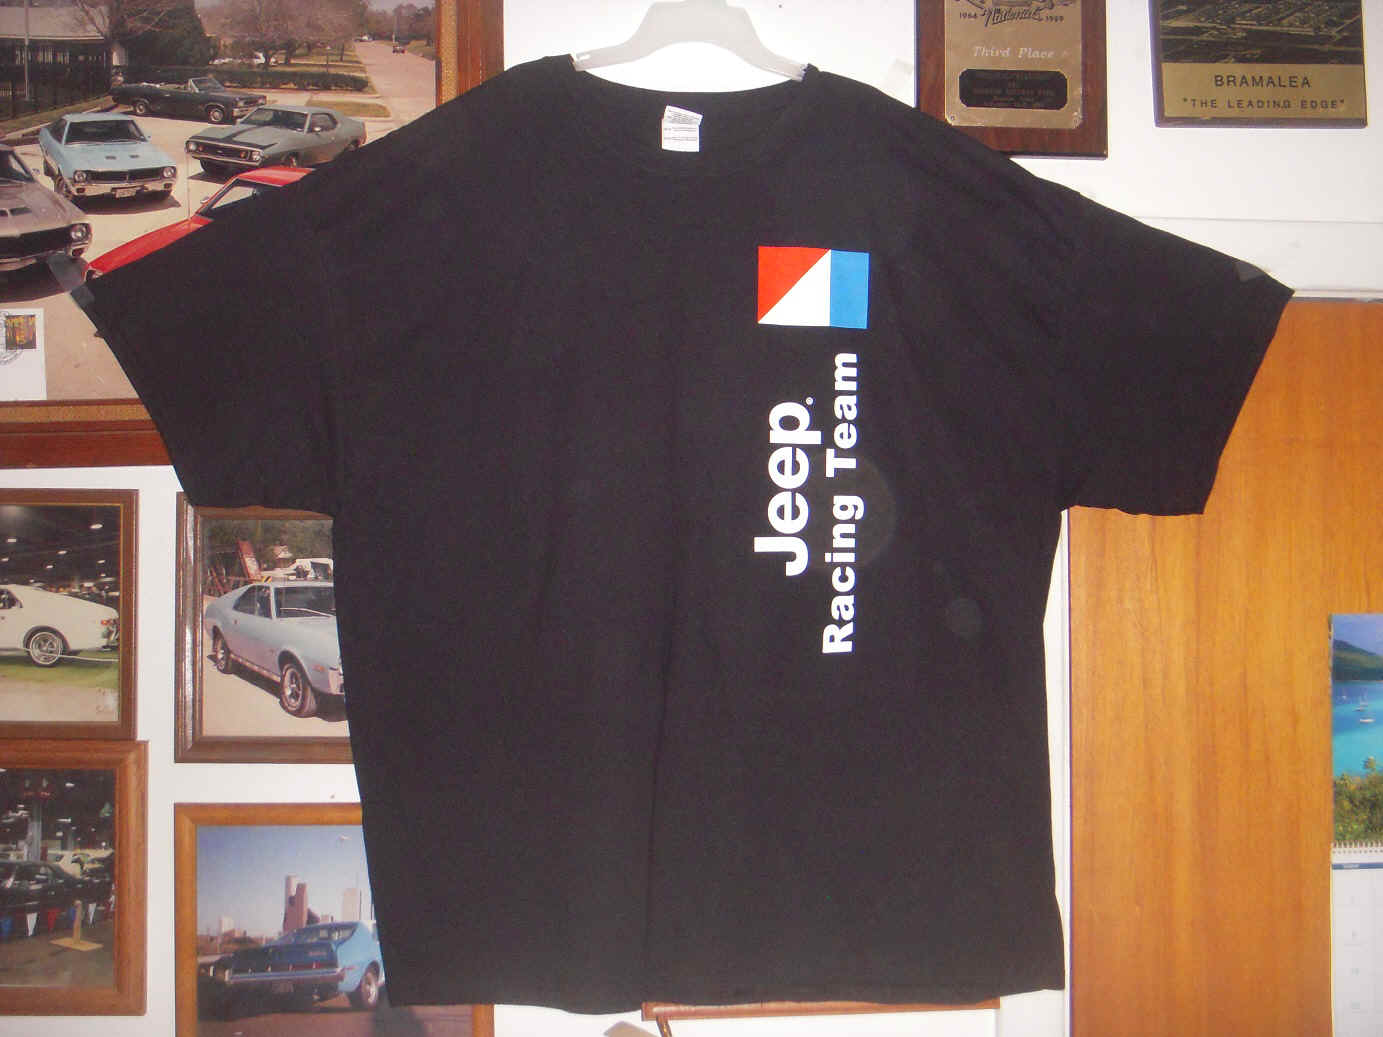 amc-jee-racing-team-shirt.JPG (413360 bytes)